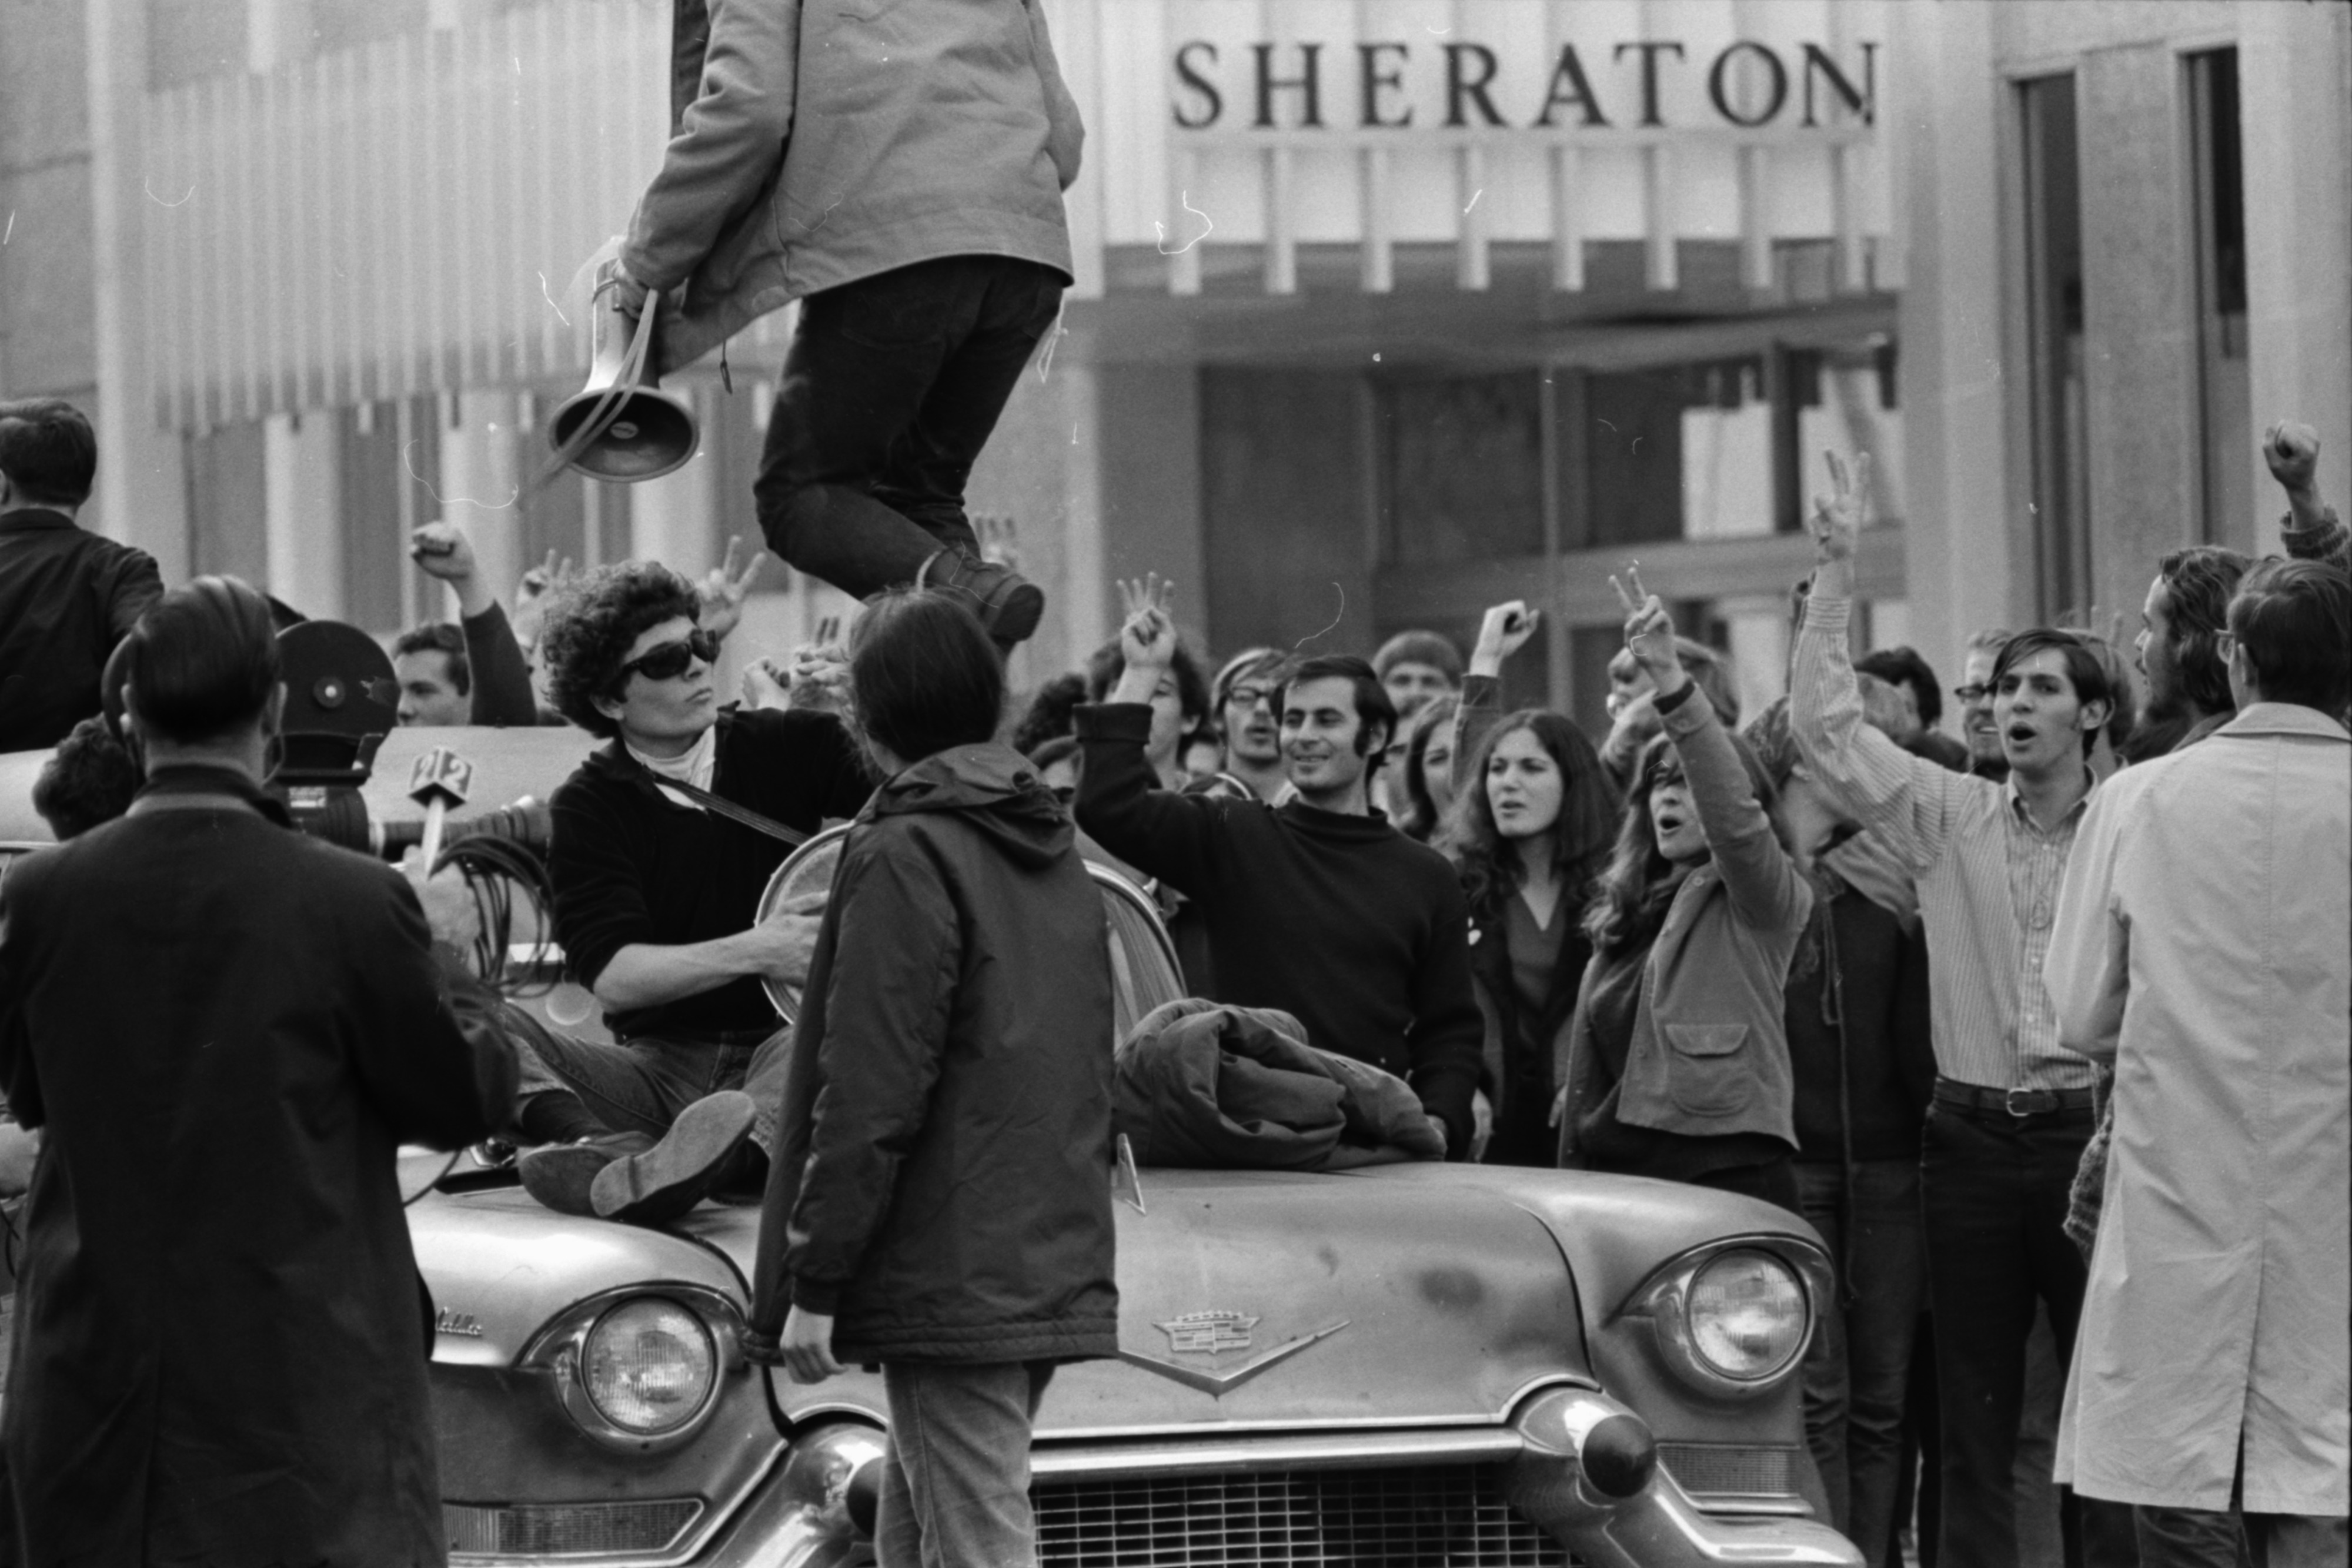 SDS march on election office, November 1968 image